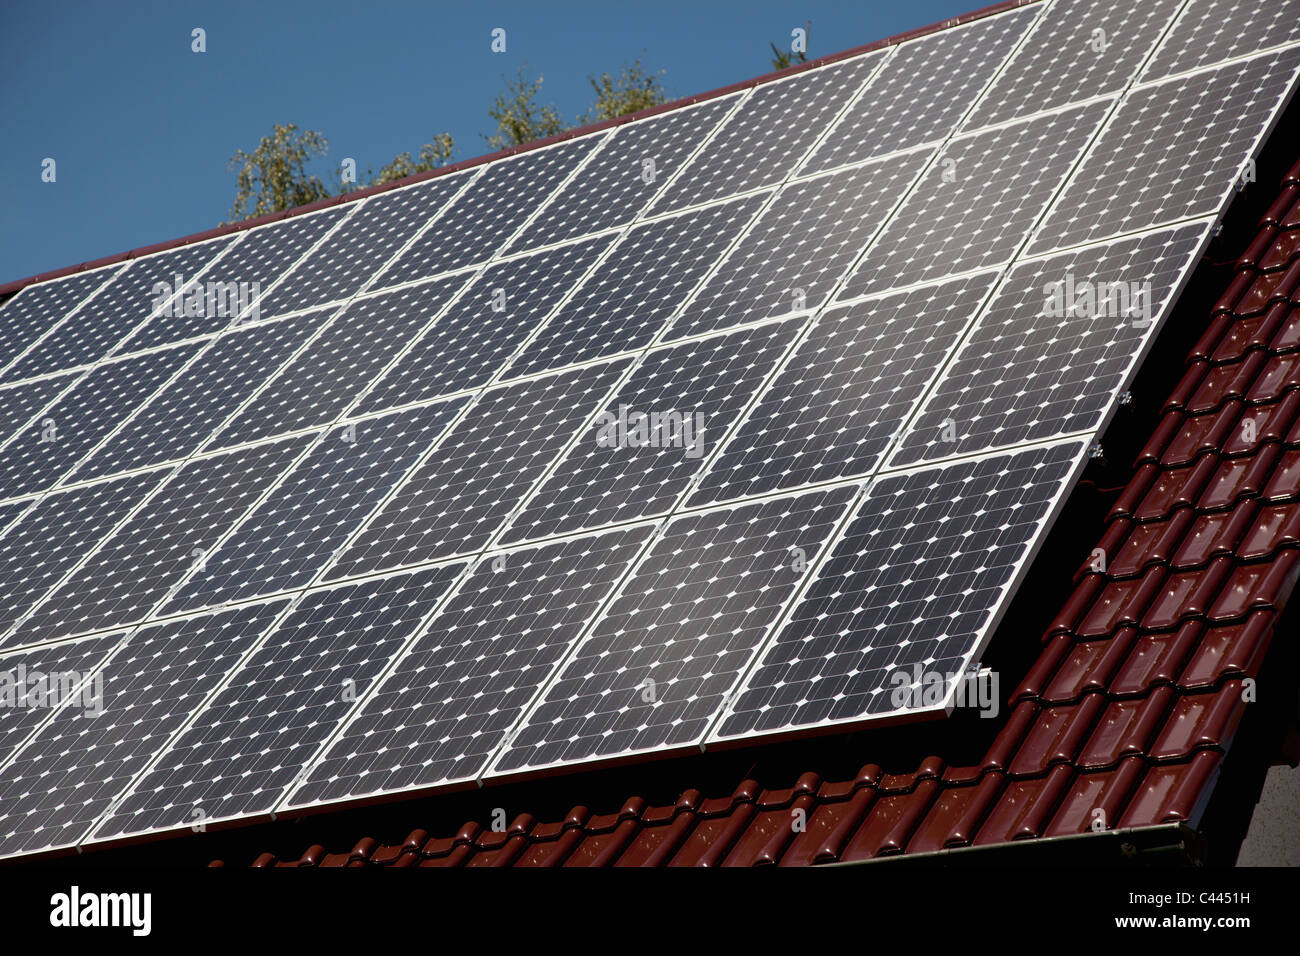 Detail of solar panels on a roof - Stock Image